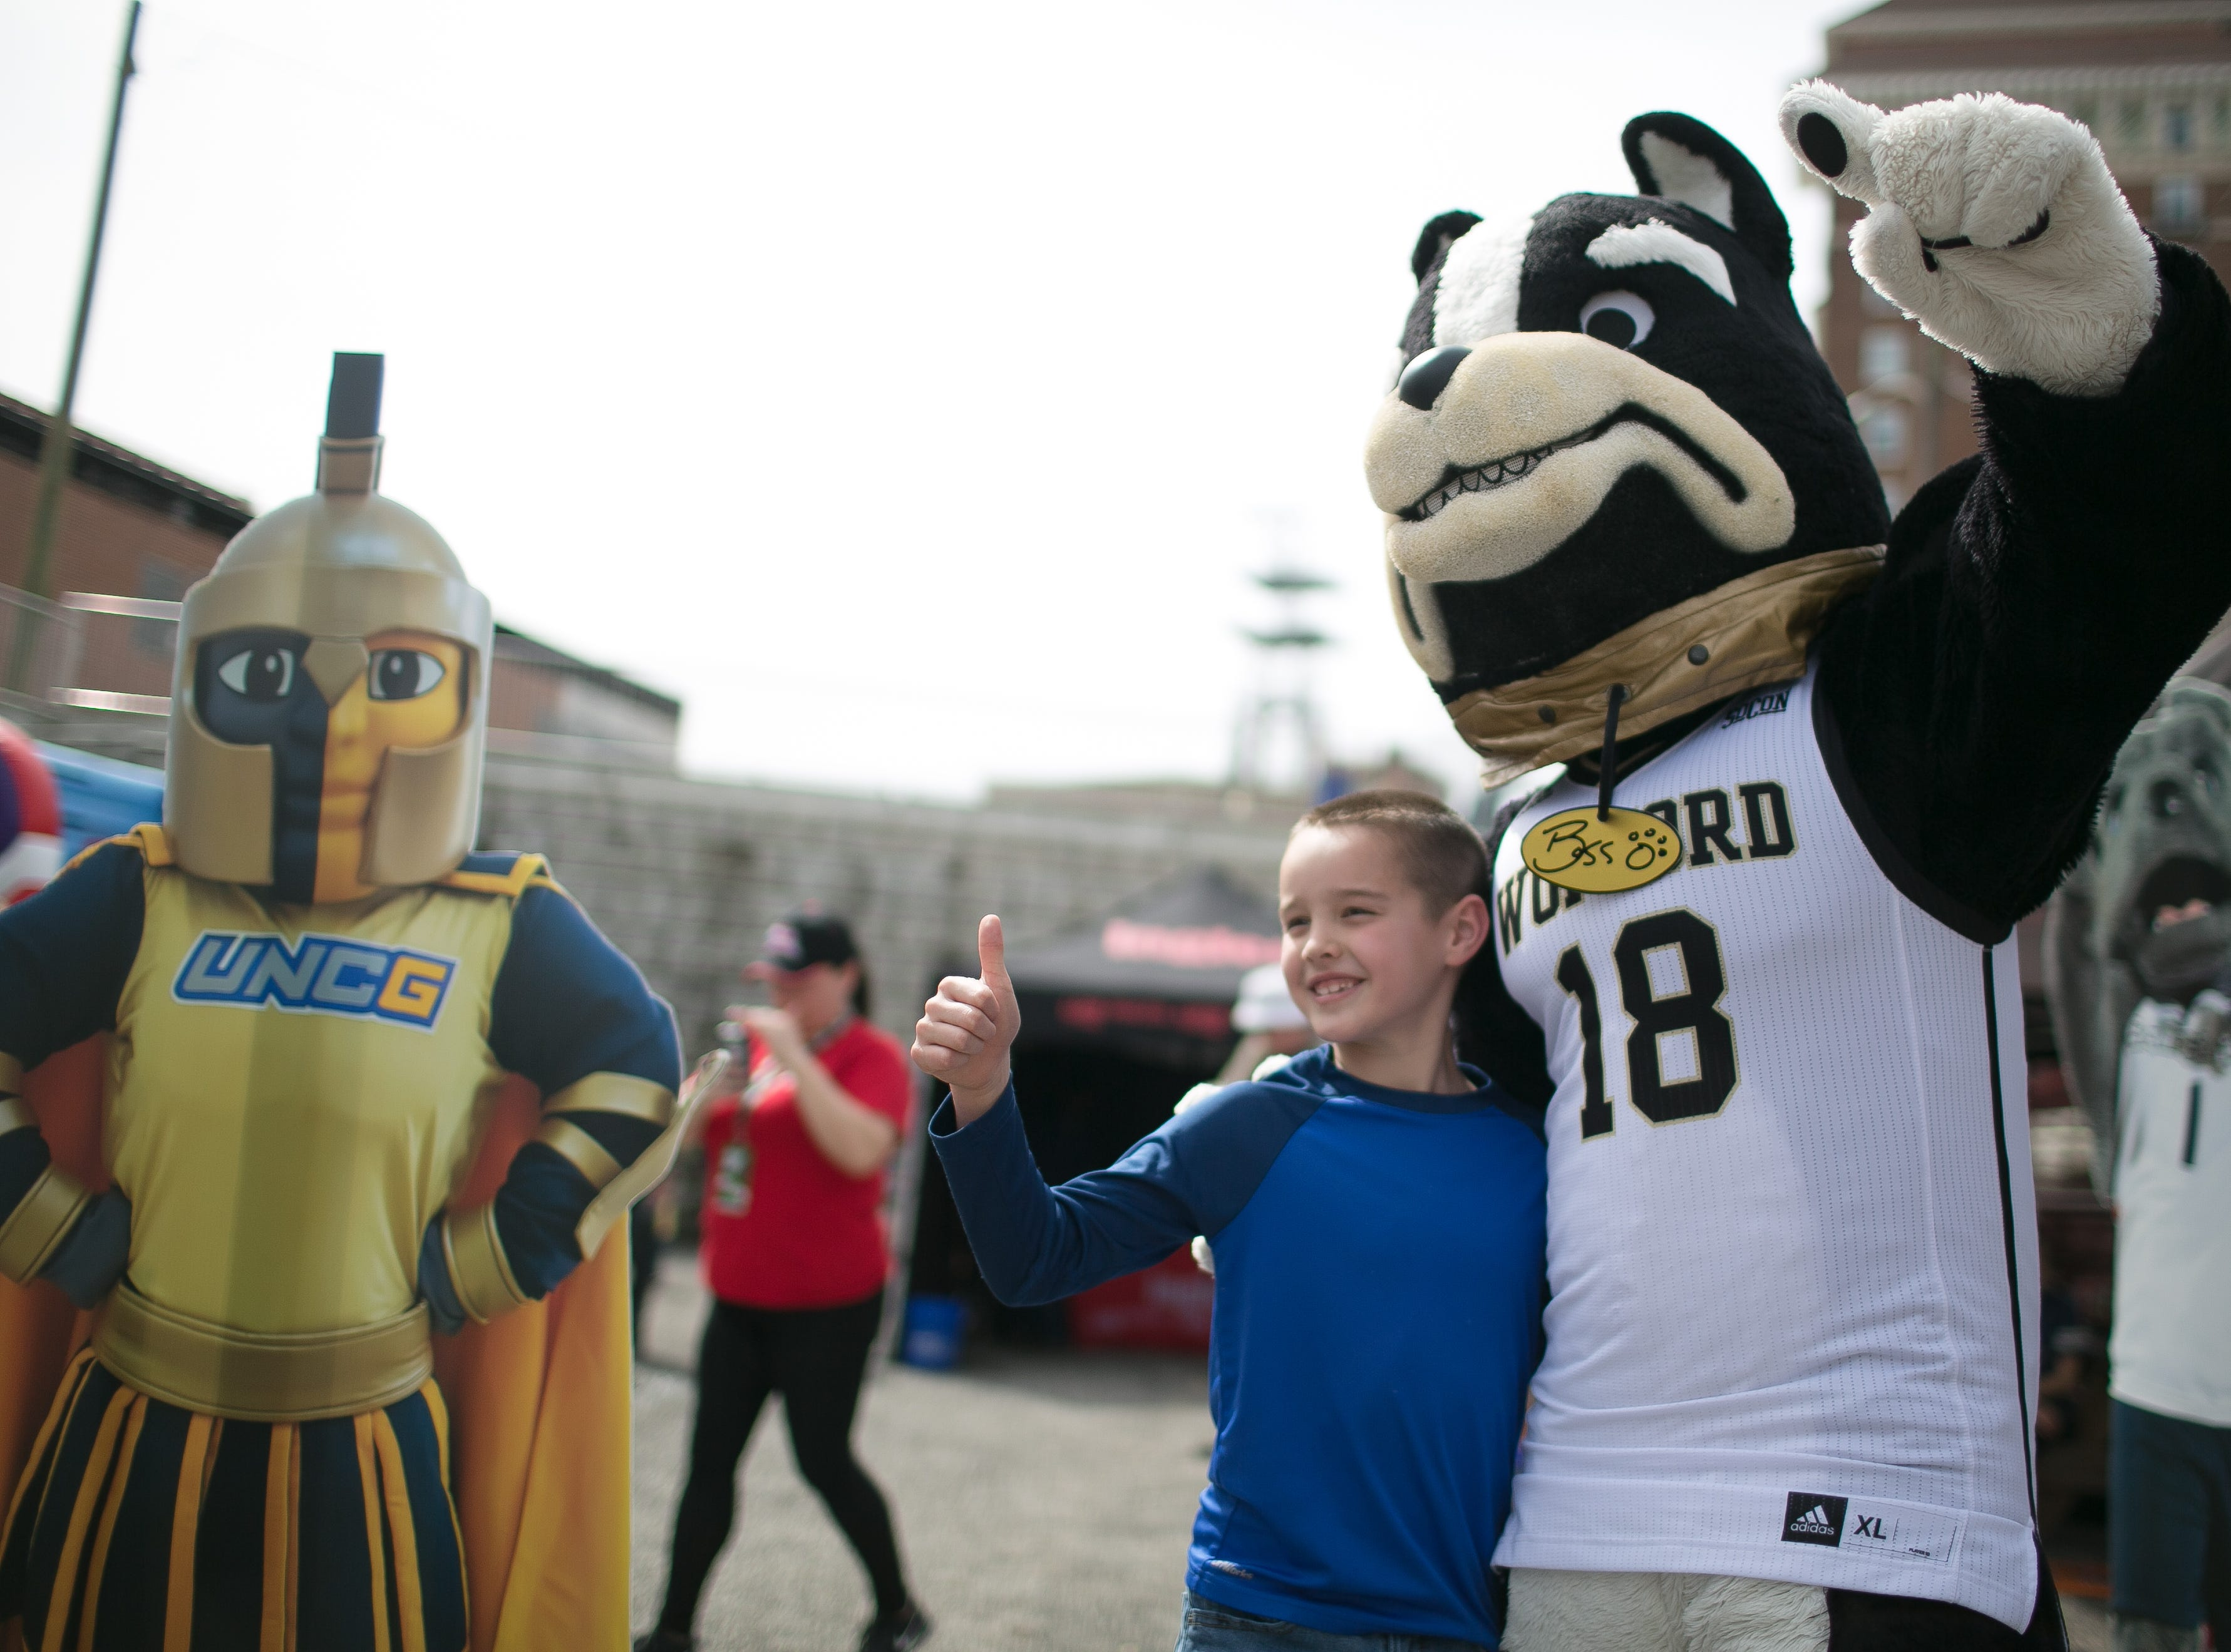 Fans greet their favorite mascots as Lyric performs at the Ingles SoCon Fan Experience  across the street from the U.S. Cellular Center, at 68 Haywood St. in downtown Asheville, on March 10, 2019.